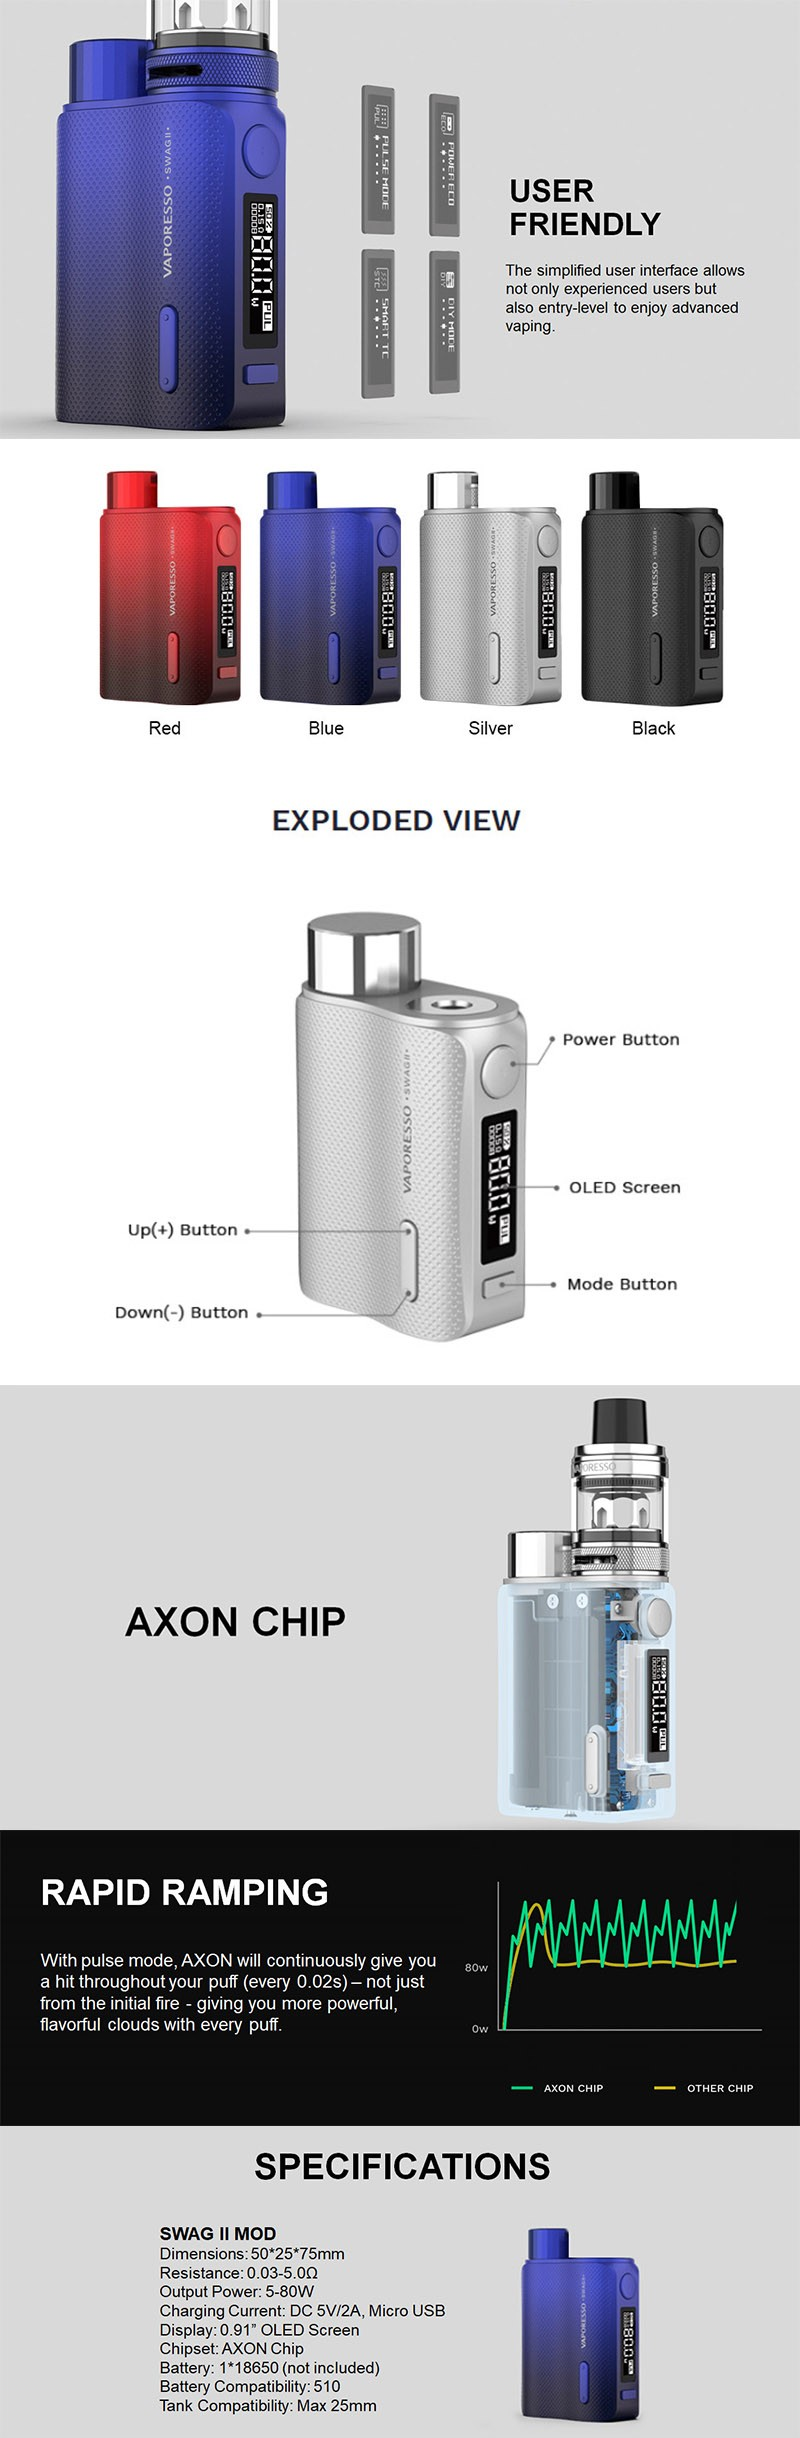 Vaporesso SWAG II 2 80W Variable Wattage Box Mod